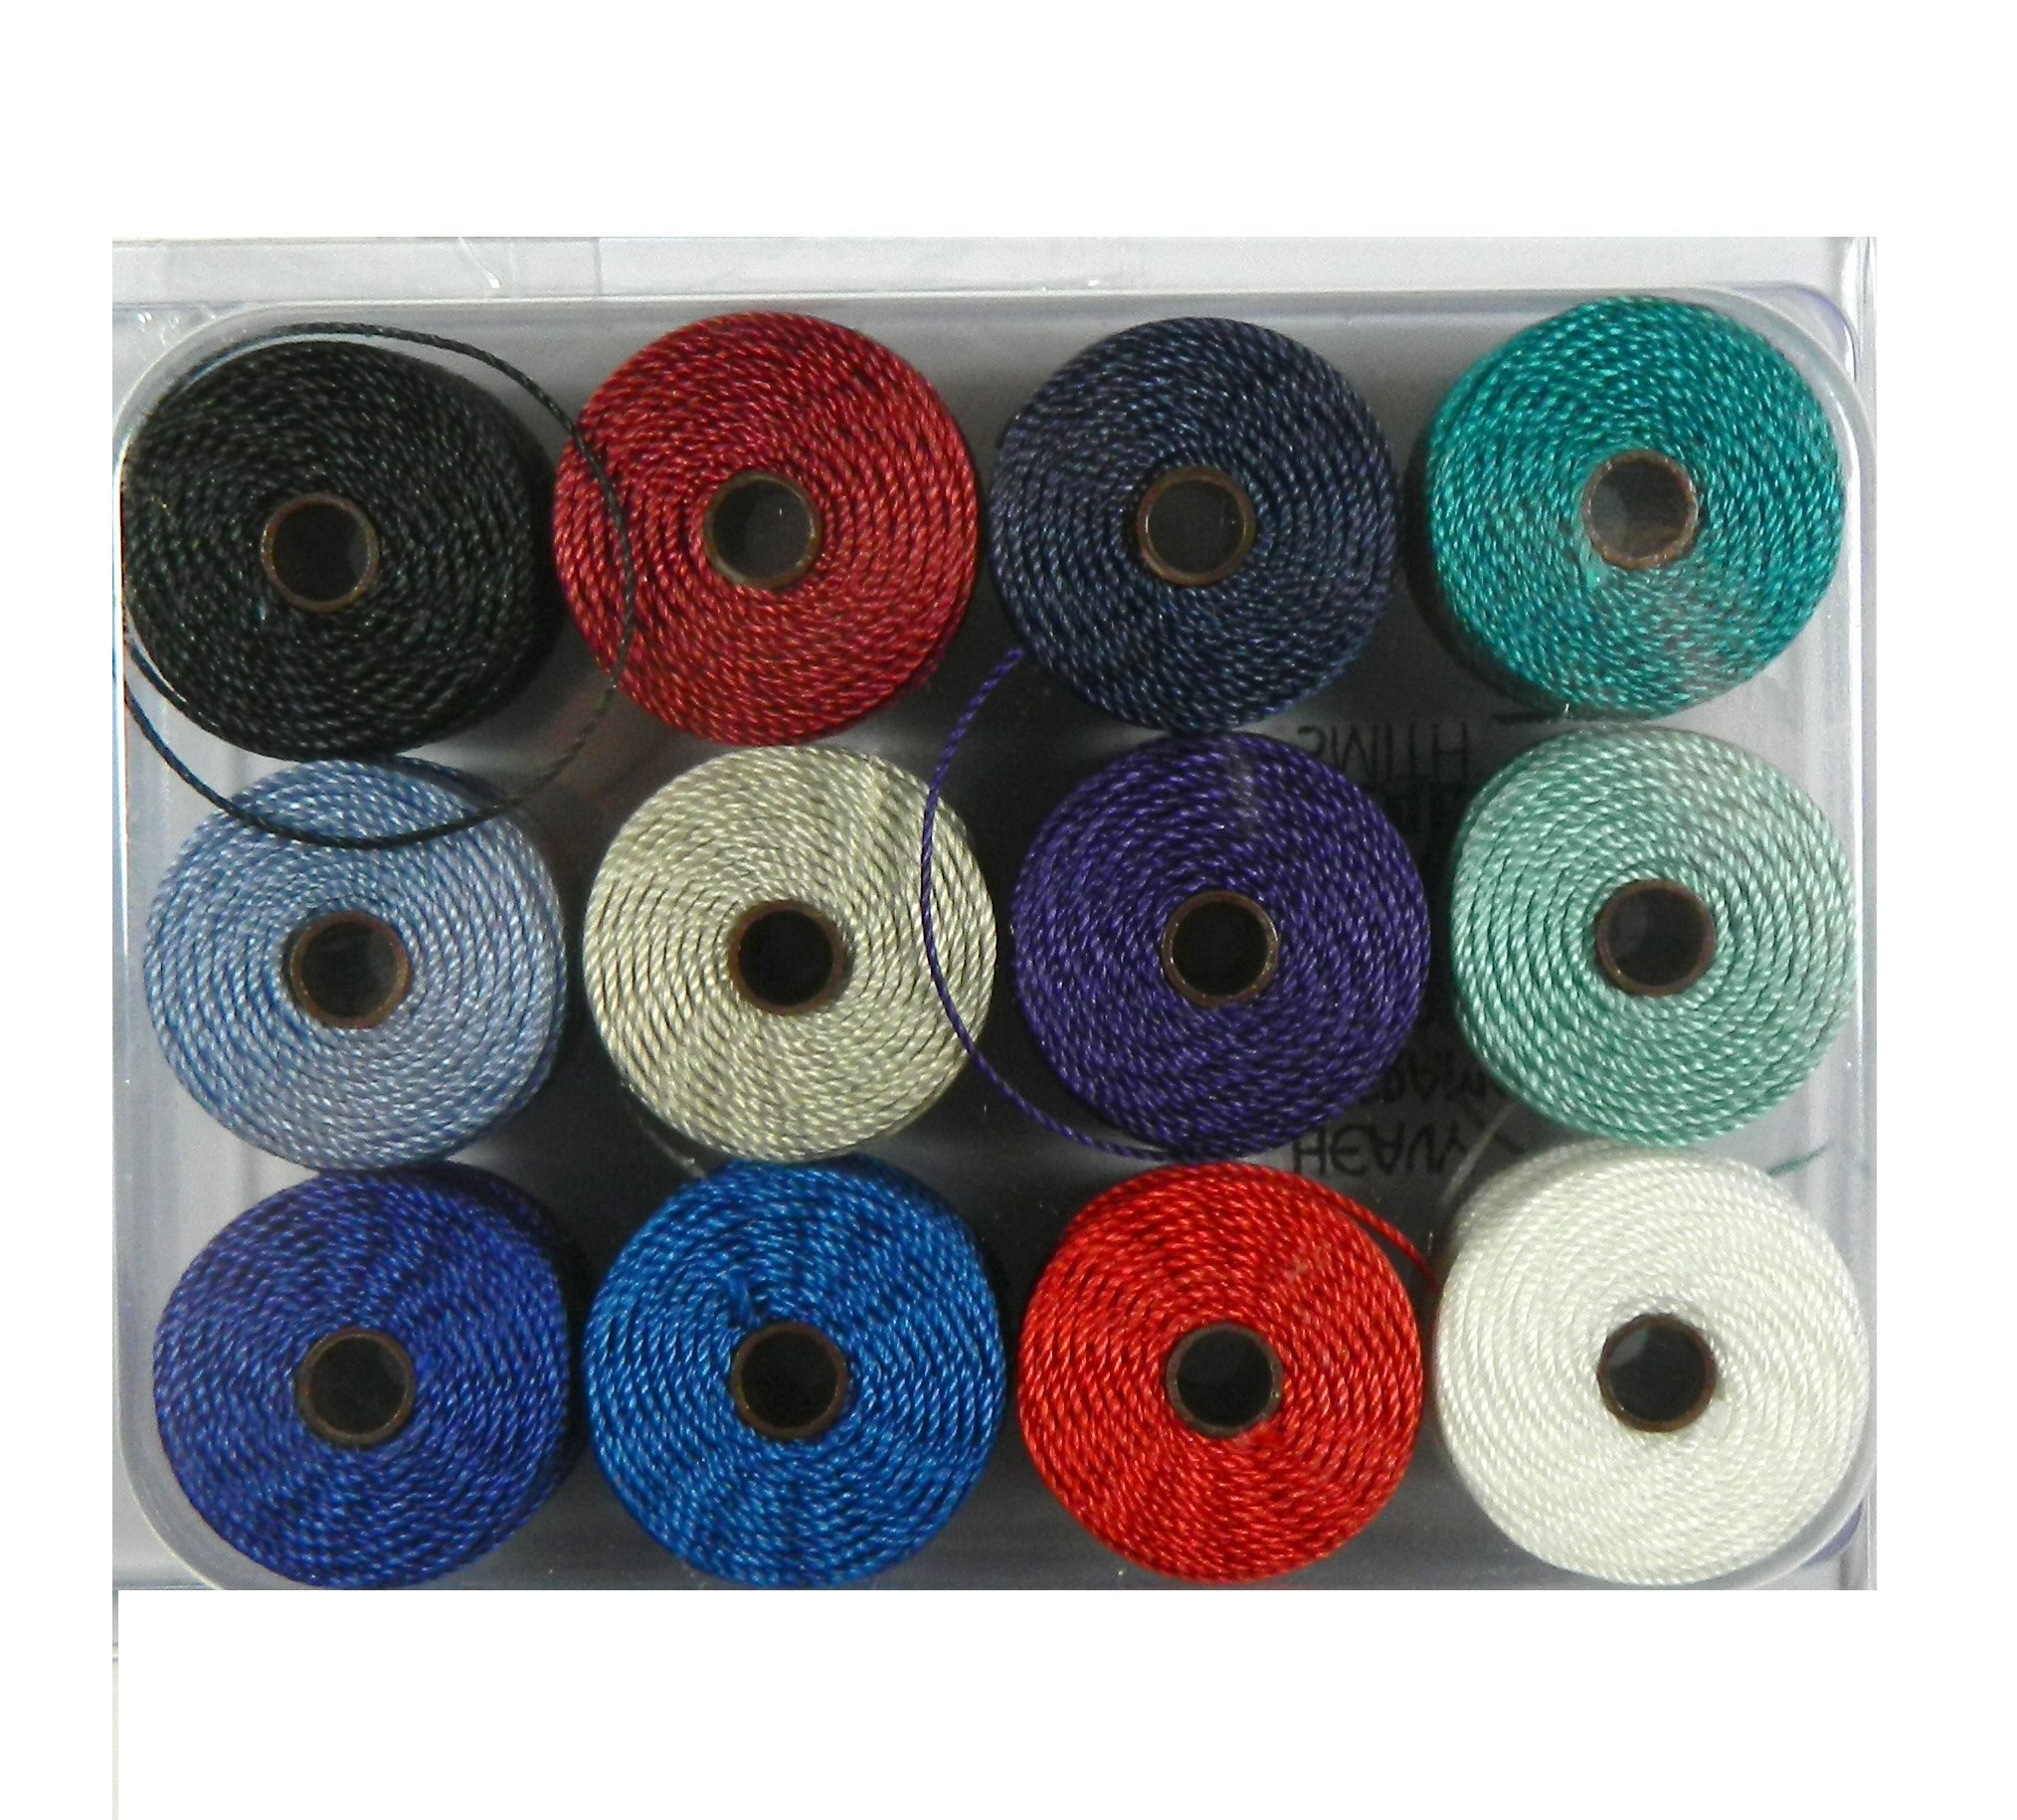 Beadsmith Tex 400 S-Lon Cord Ideal for Crochet Macrame and Kumihimo Jewelry, 0.9mm, Sampler2